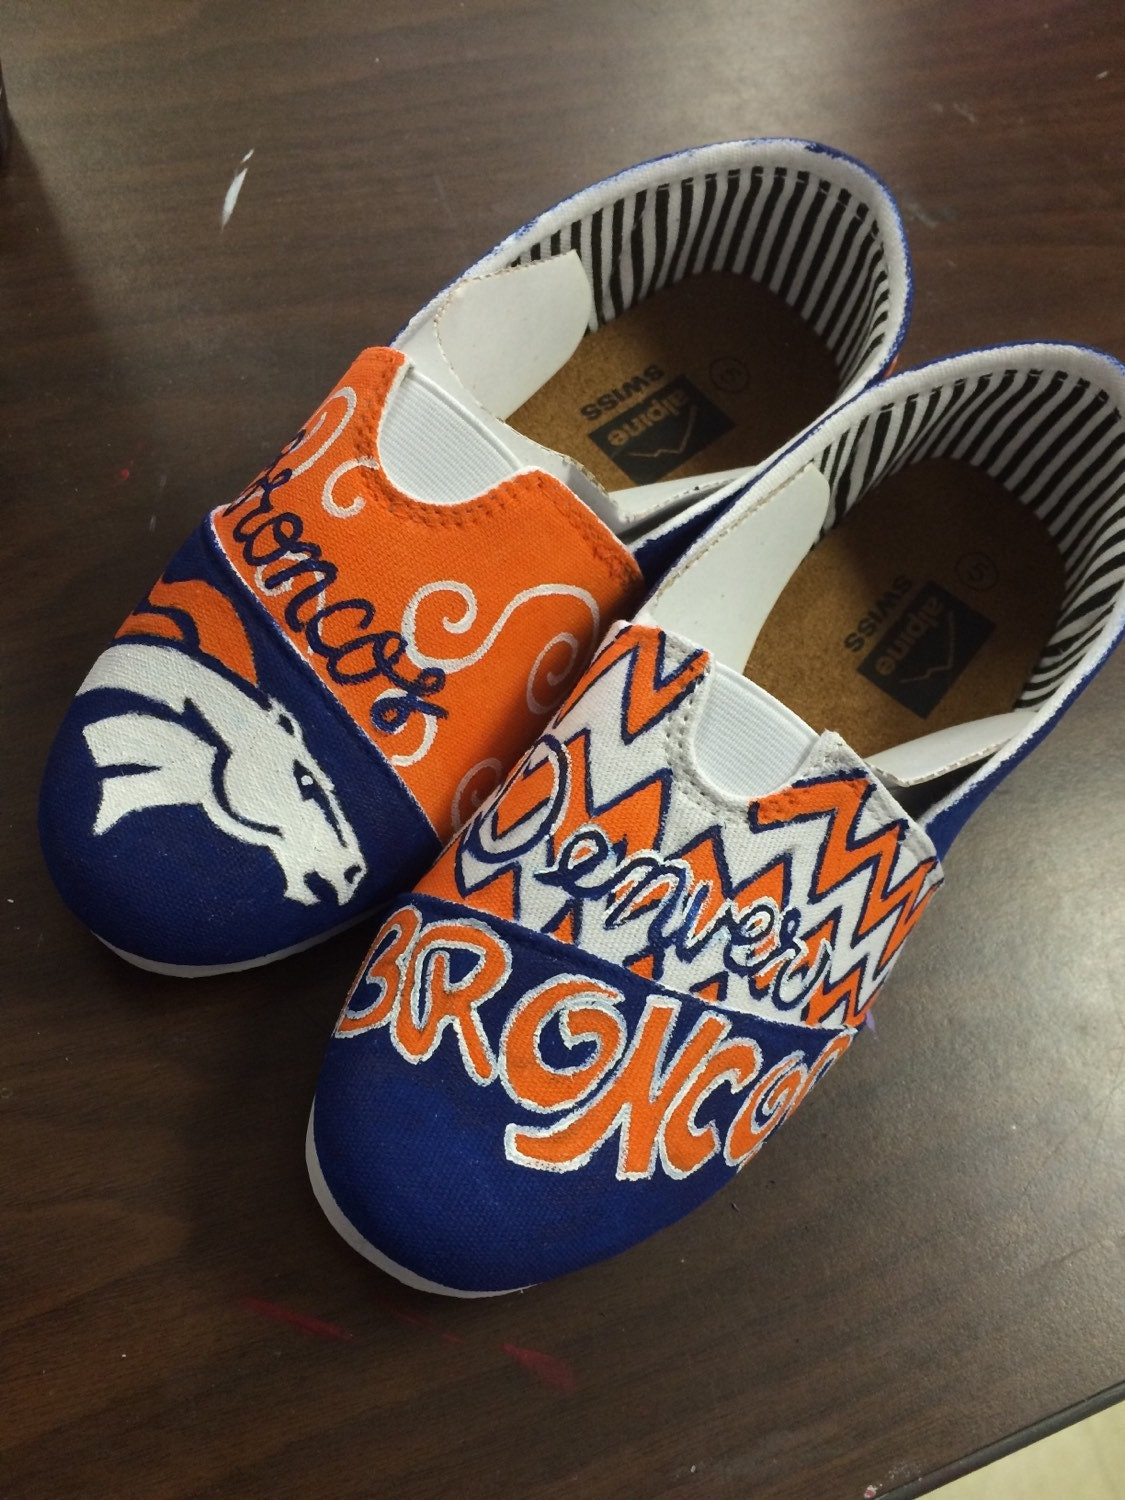 sports team shoes custom painted by pictureworth1000word